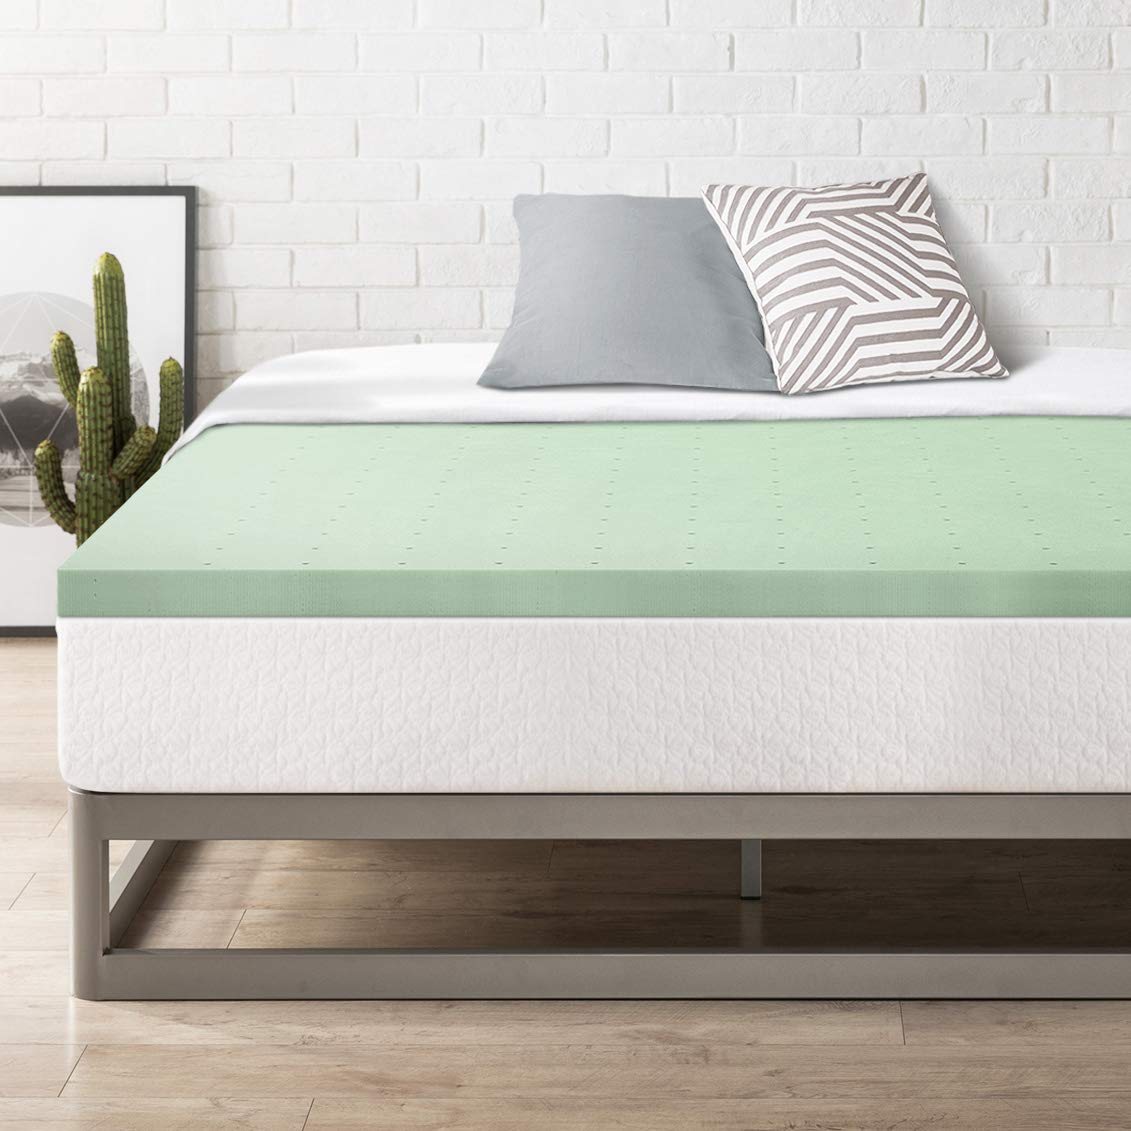 Amazon.com: Best Price Mattress TXL 2 Inch Memory Foam Bed Topper with Green Tea Cooling Mattress Pad, Twin XL Size: Kitchen & Dining